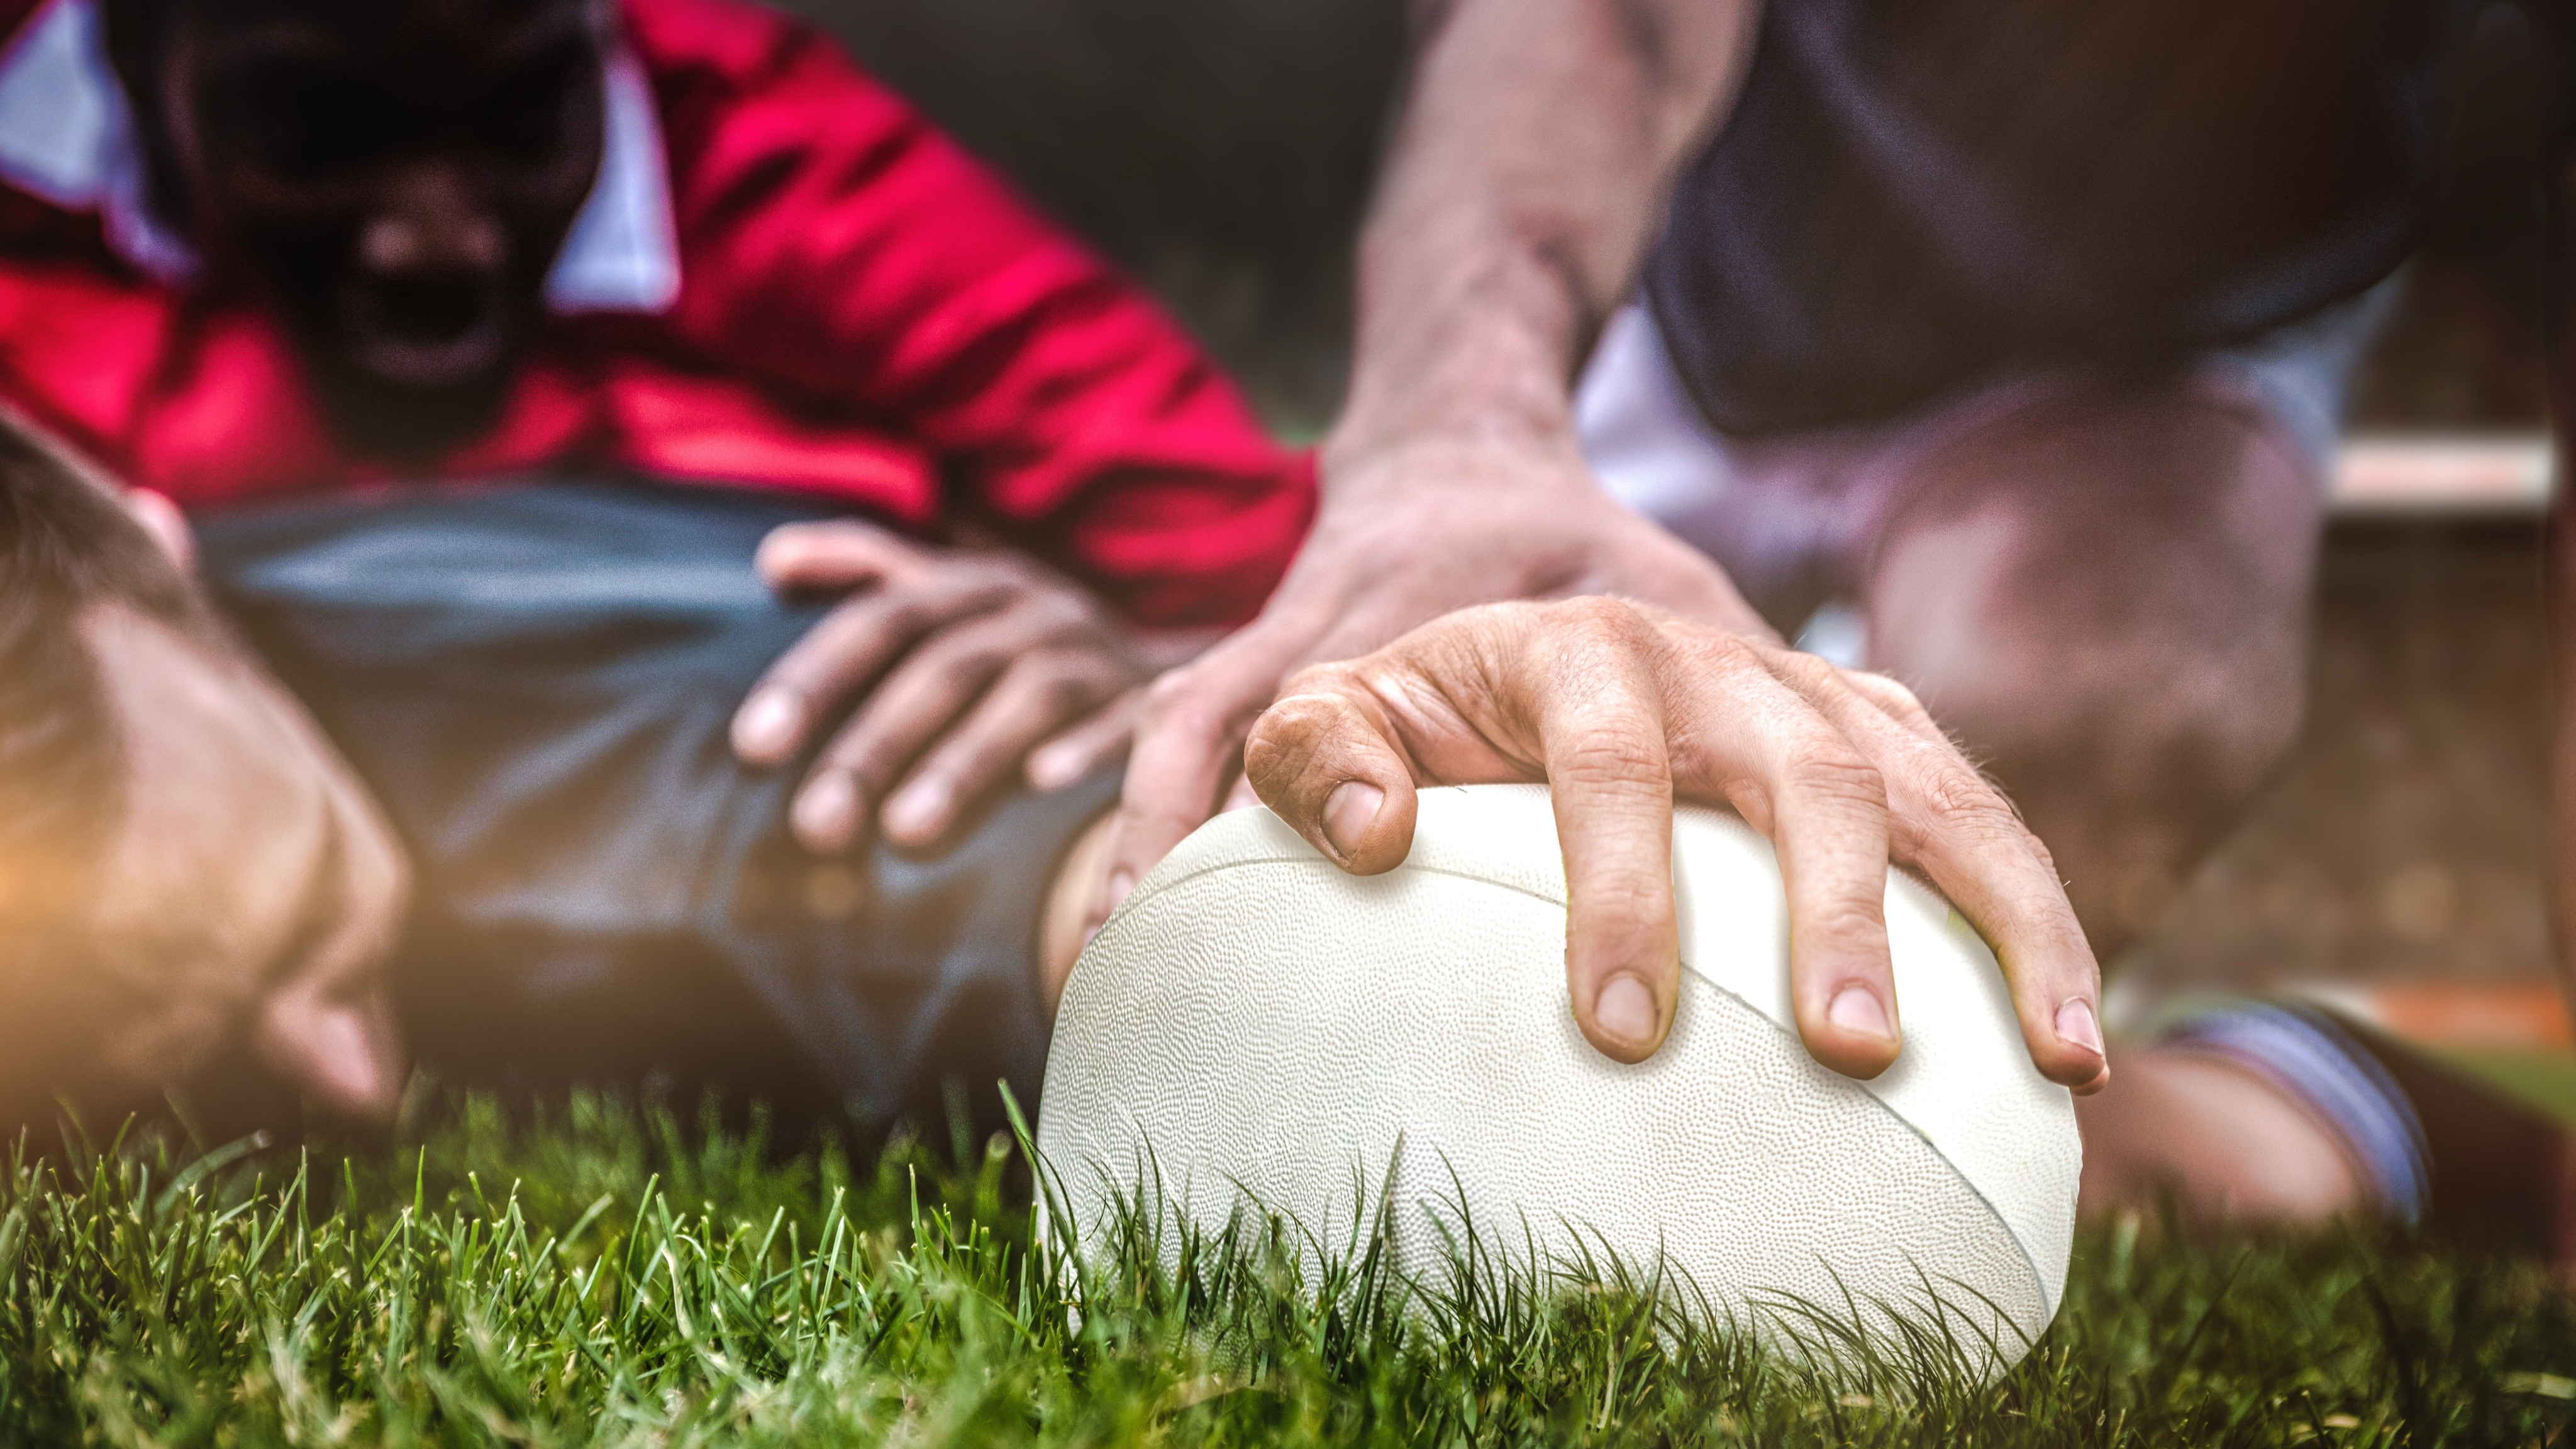 The Rugby World Cup: Tackling complex risks